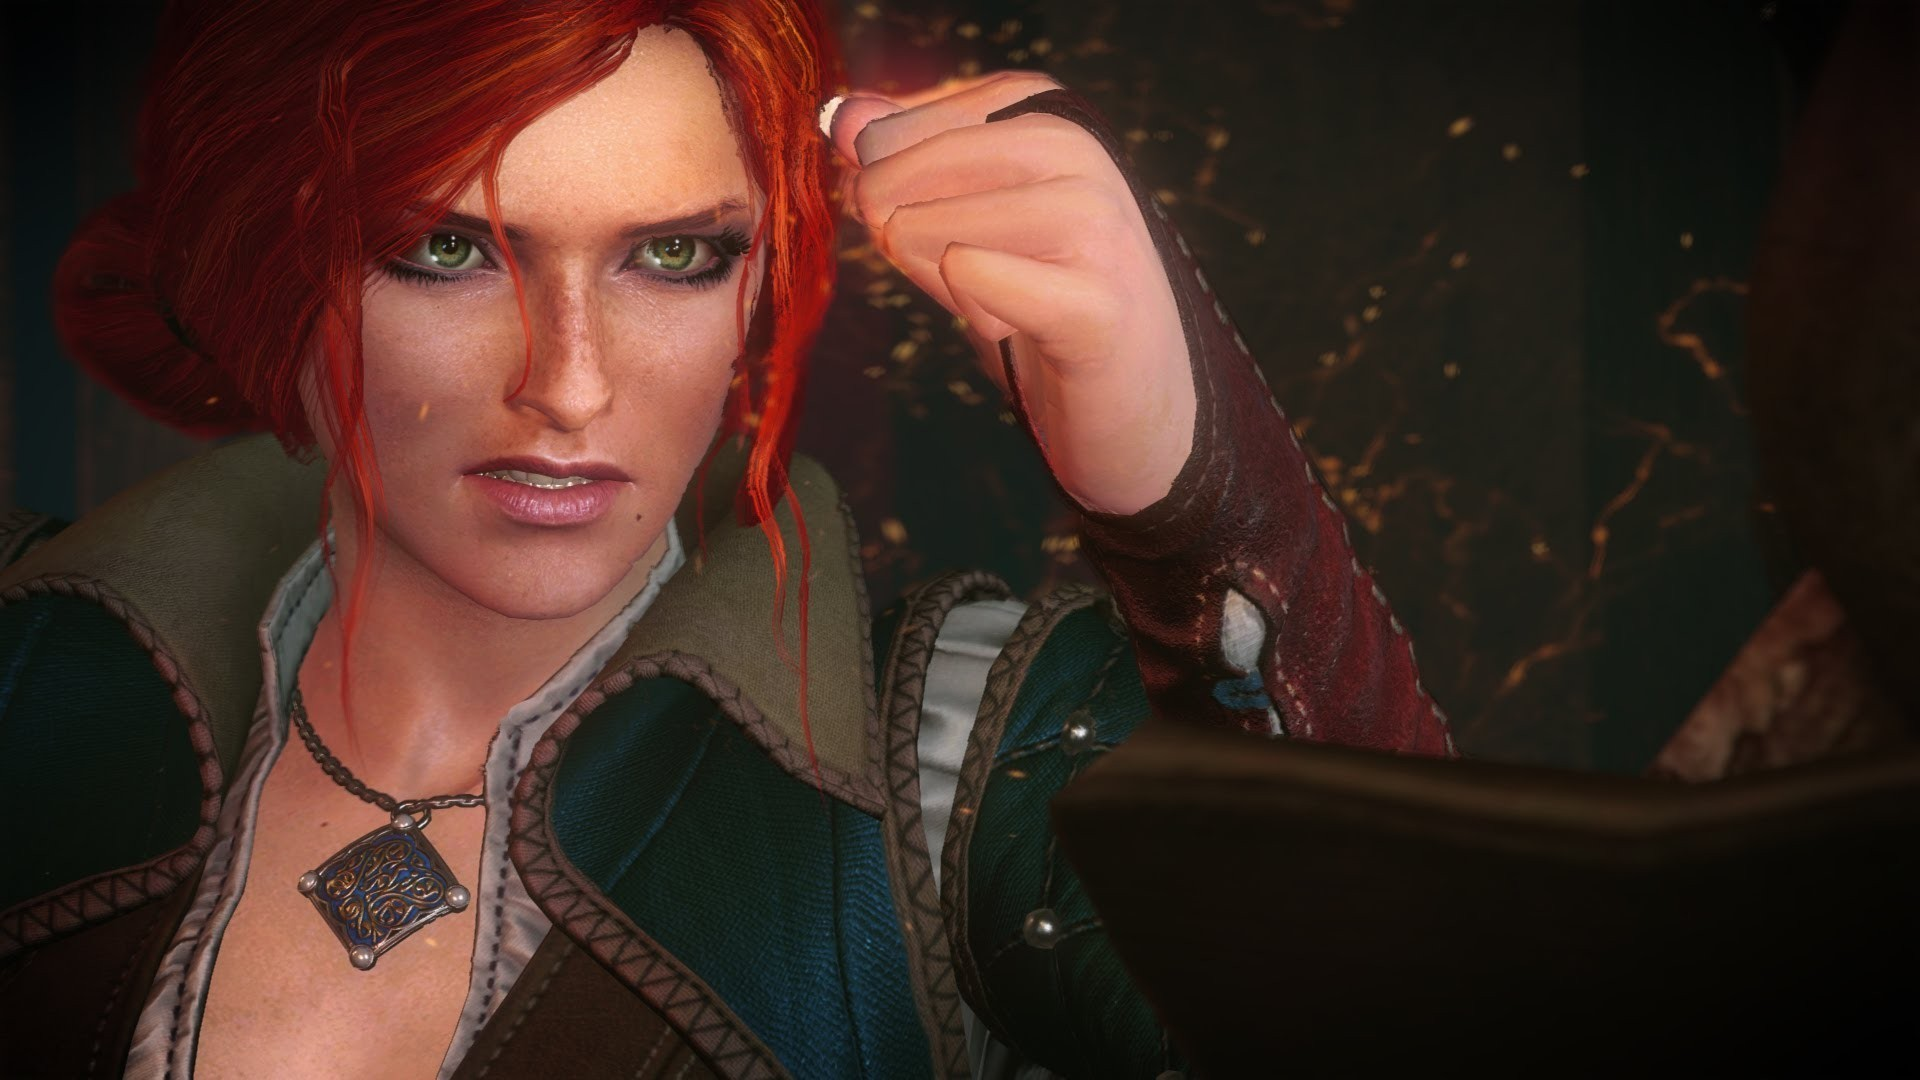 the witcher 3 wild hunt triss merigold Wallpapers HD / Desktop and Mobile  Backgrounds